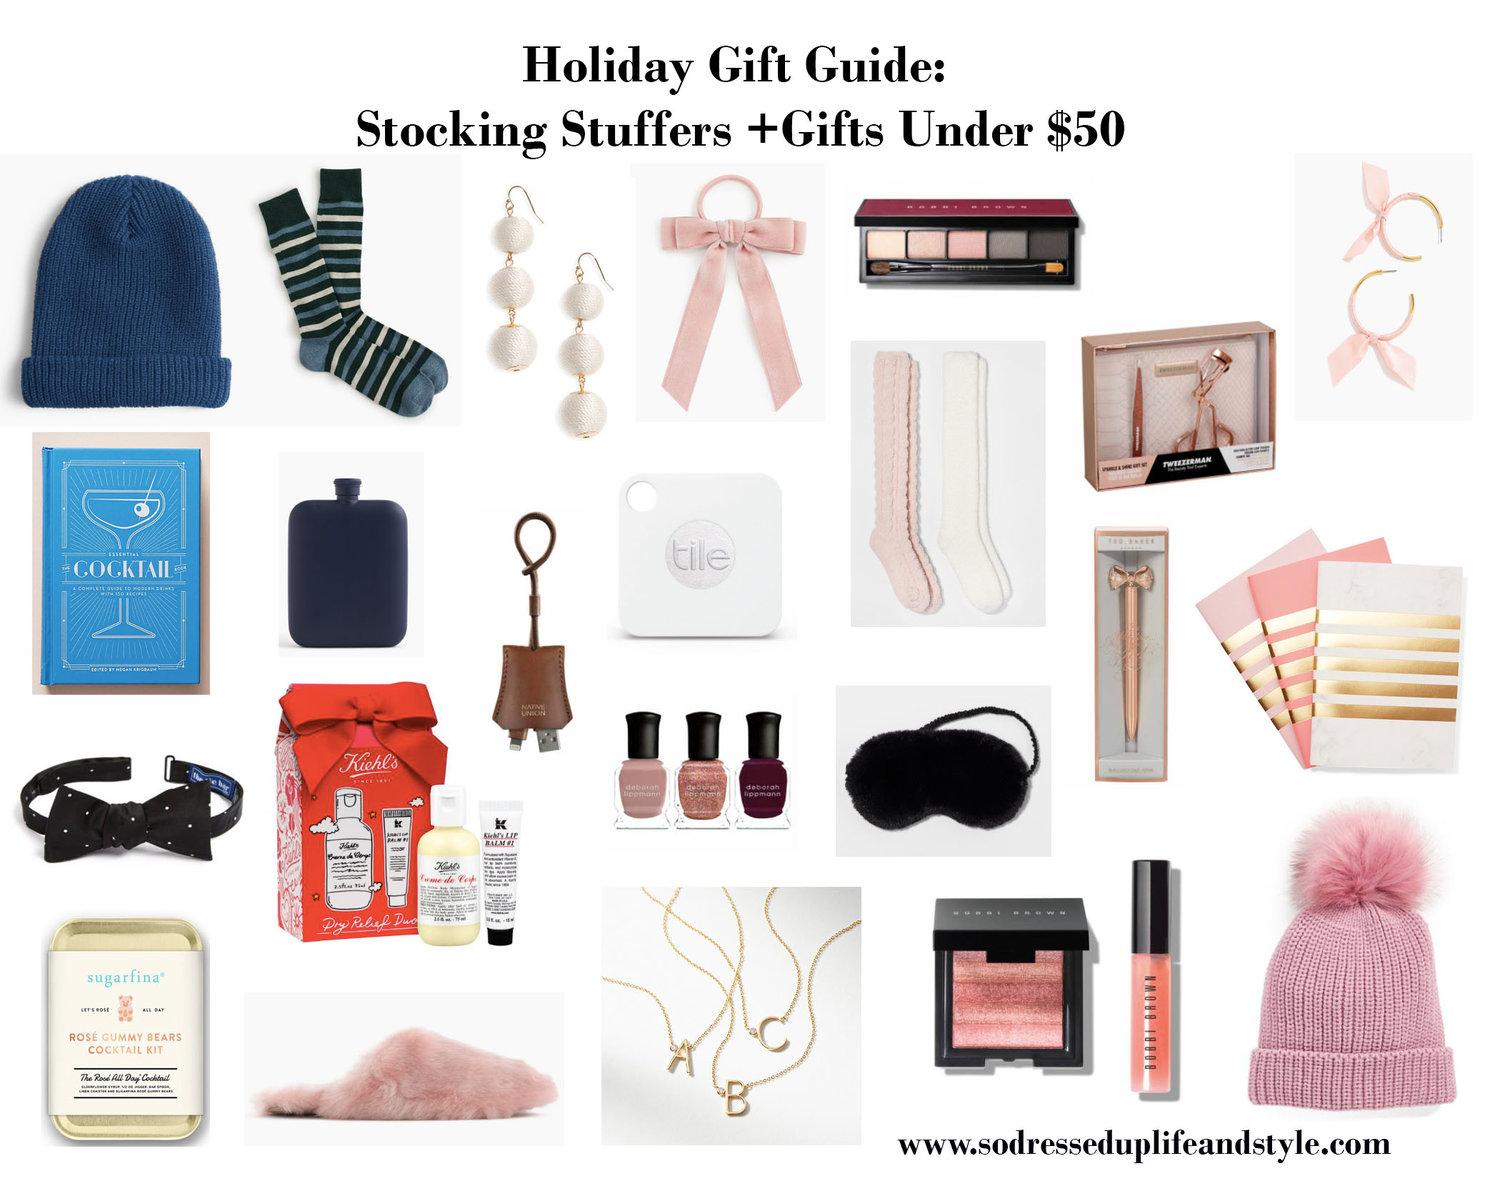 Holiday+Gift+Guide+UNDER+50.jpg